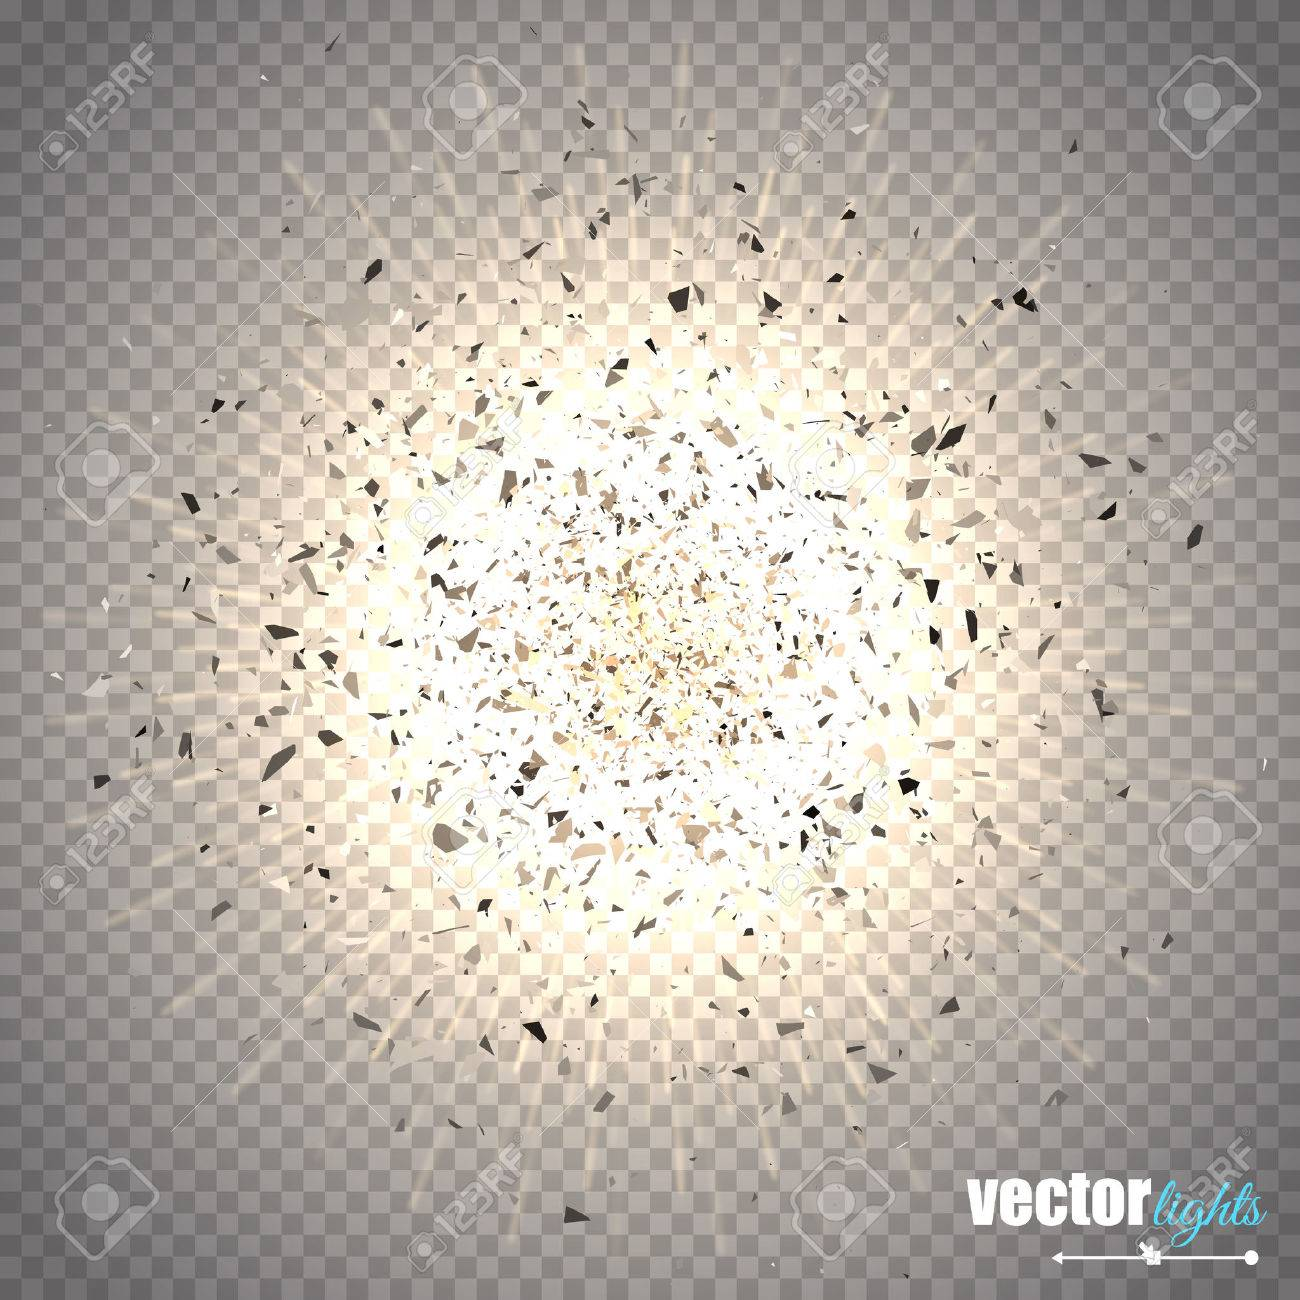 Abstract vector explosion. Star explosion with particles isolated on transparent background. - 52725514